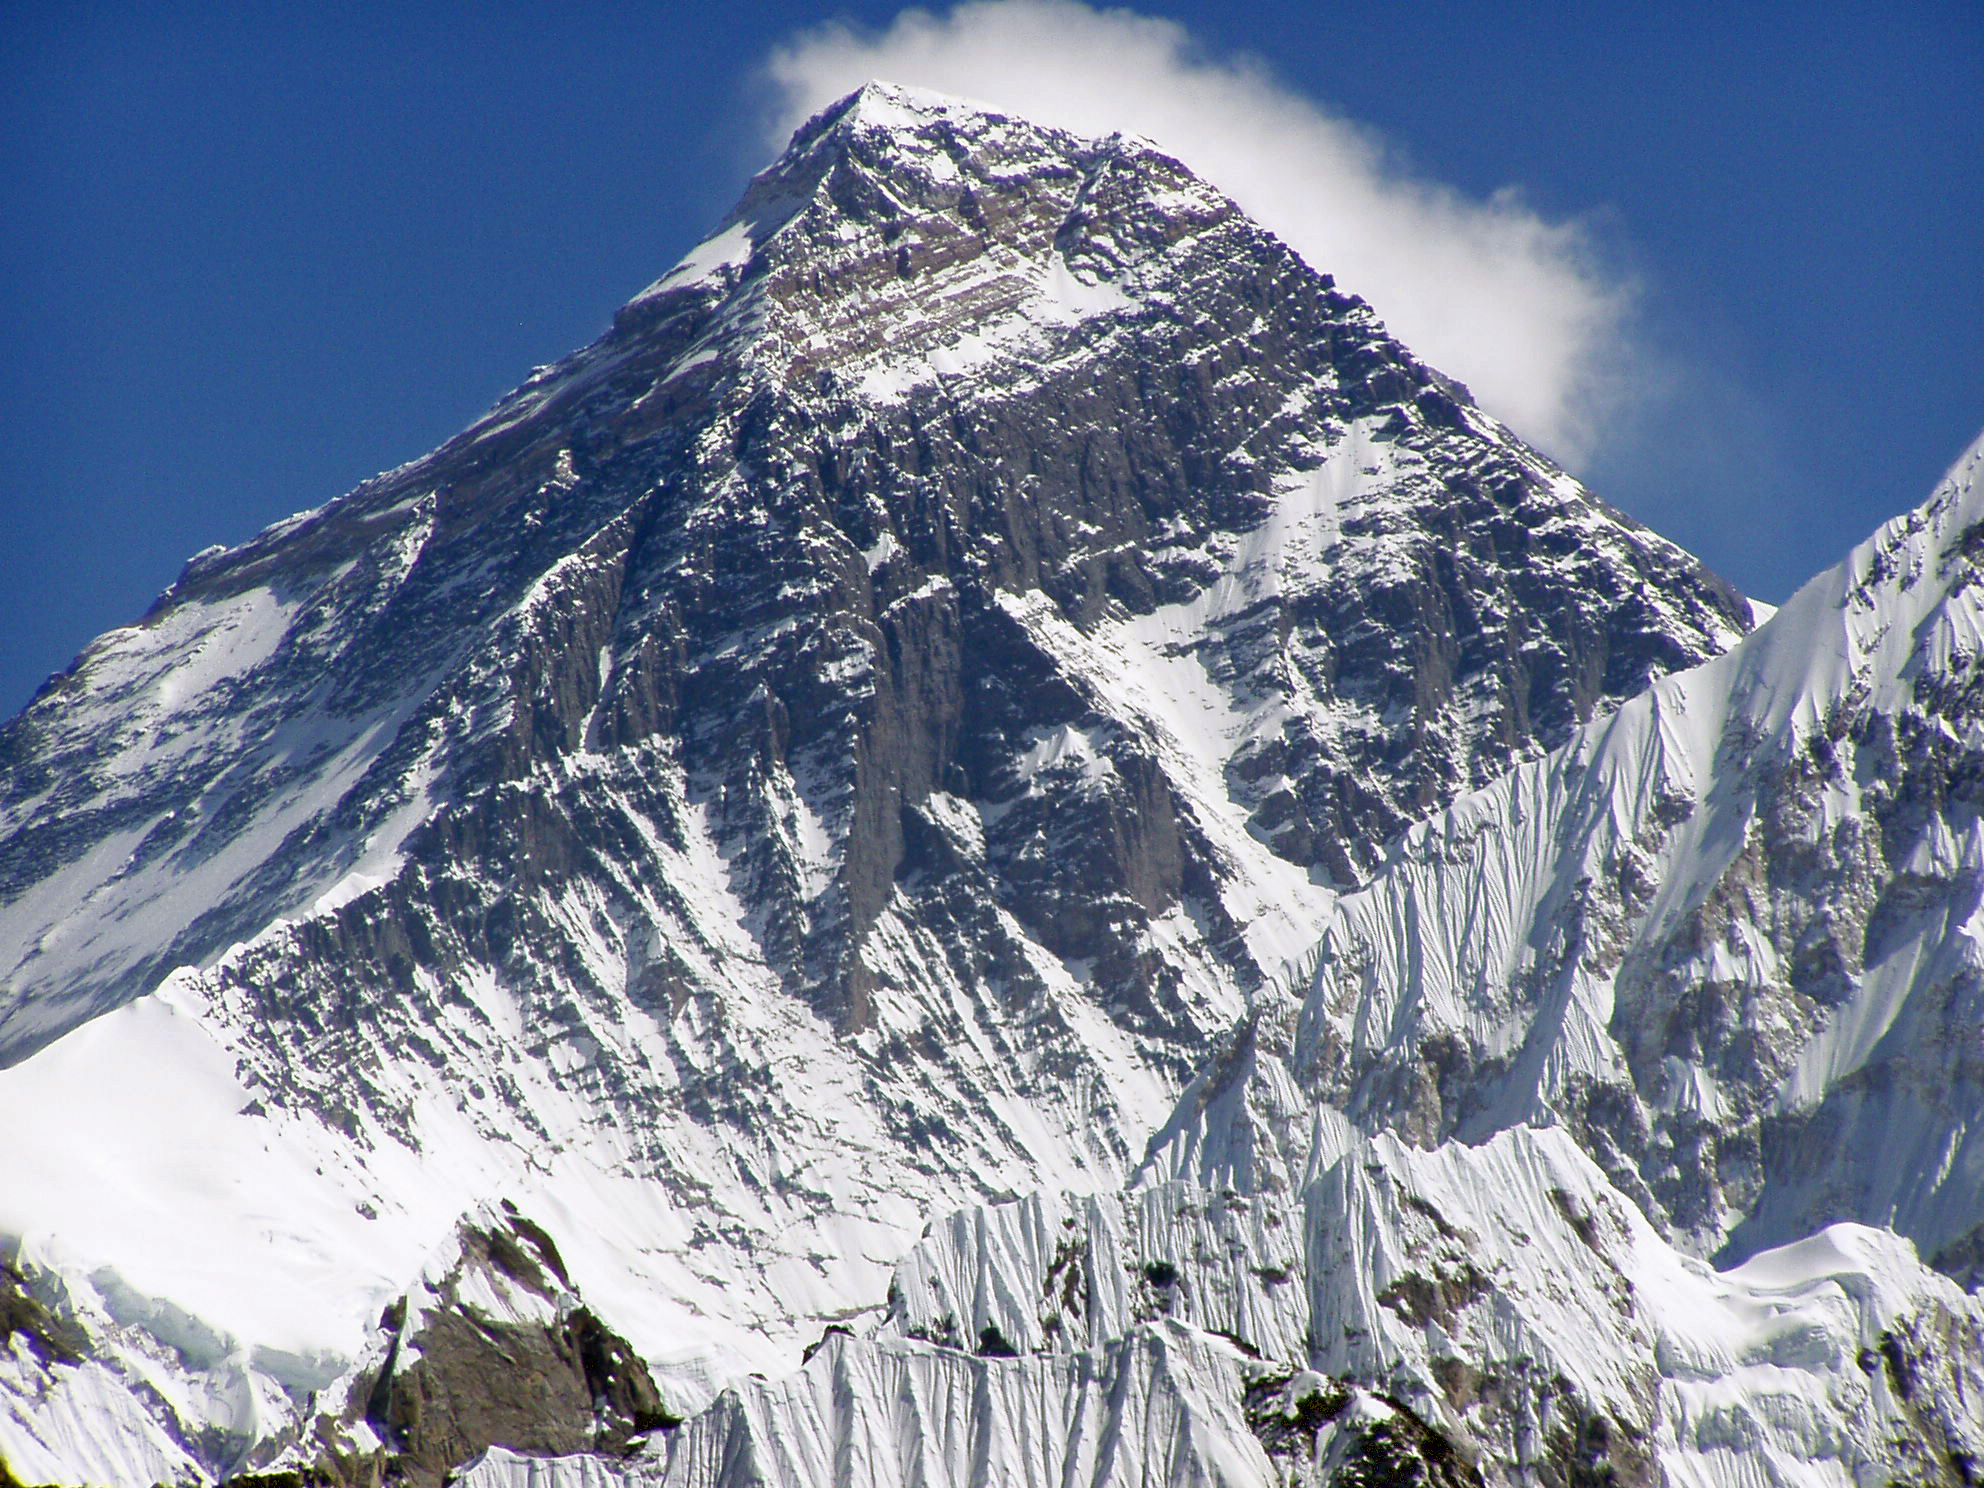 http://www.mount-everest.net/images/mt-everest-peak.jpg